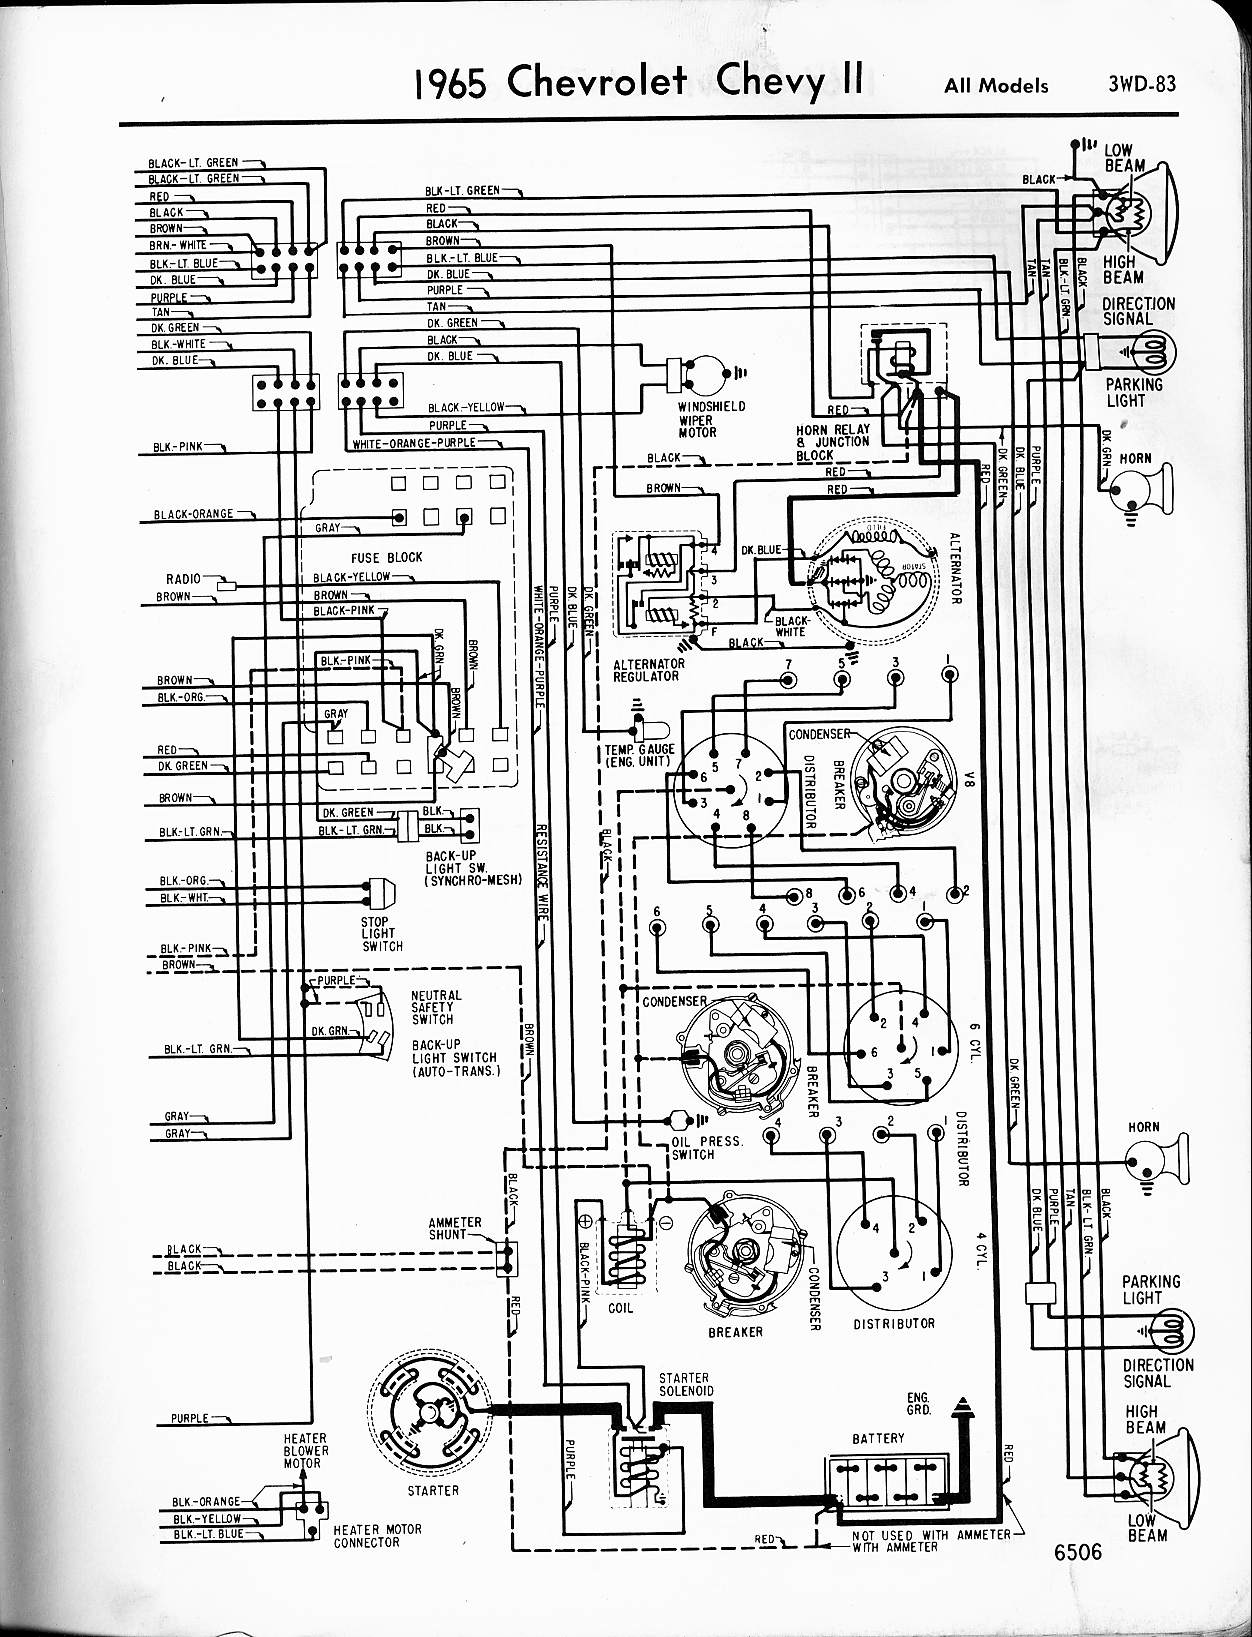 1964 chevrolet wiring diagram on 70 nova turn signal wiring diagram rh jadecloud co 1966 Chevy C20 Wiring-Diagram 1971 Chevelle Dash Wiring Diagram